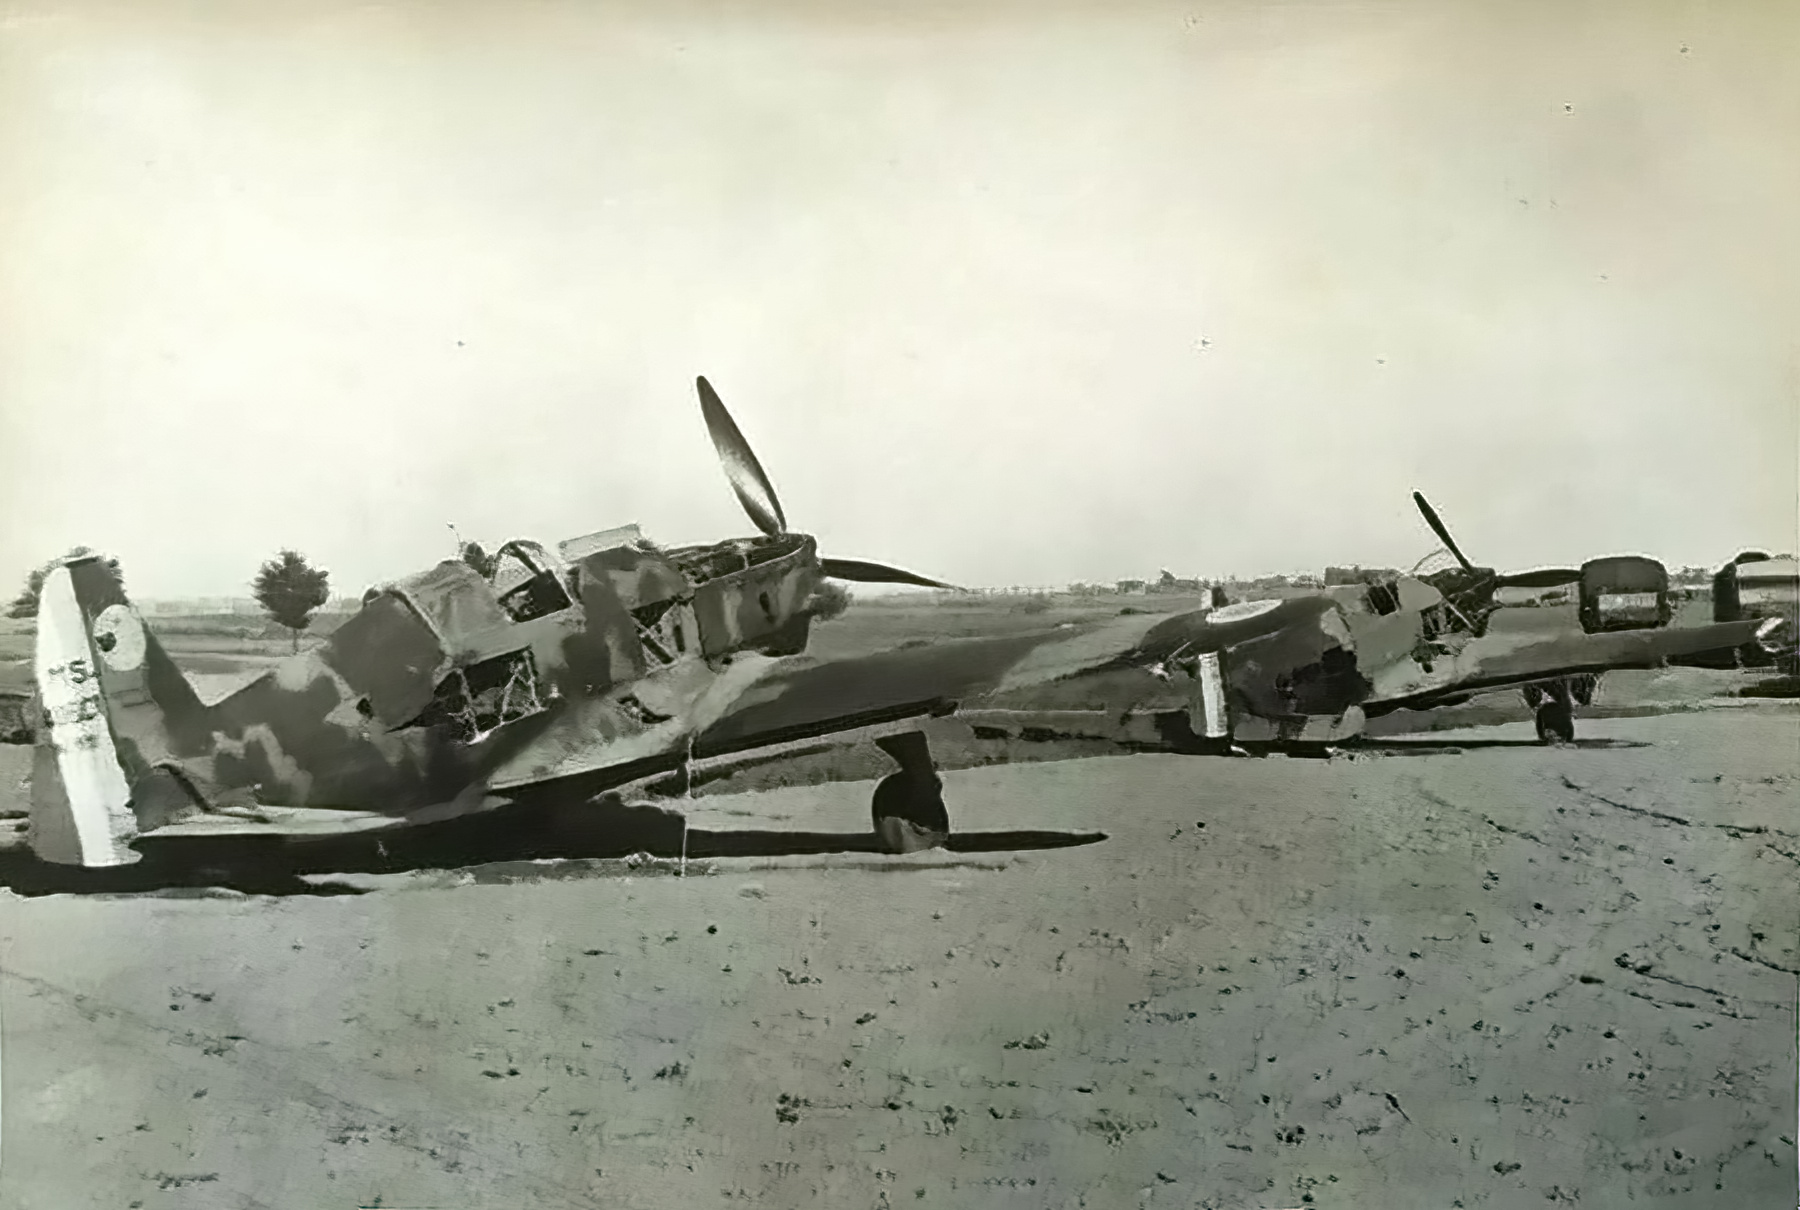 French Airforce Morane Saulnier MS 406C1 grounded at a French airbase France 1940 ebay 01